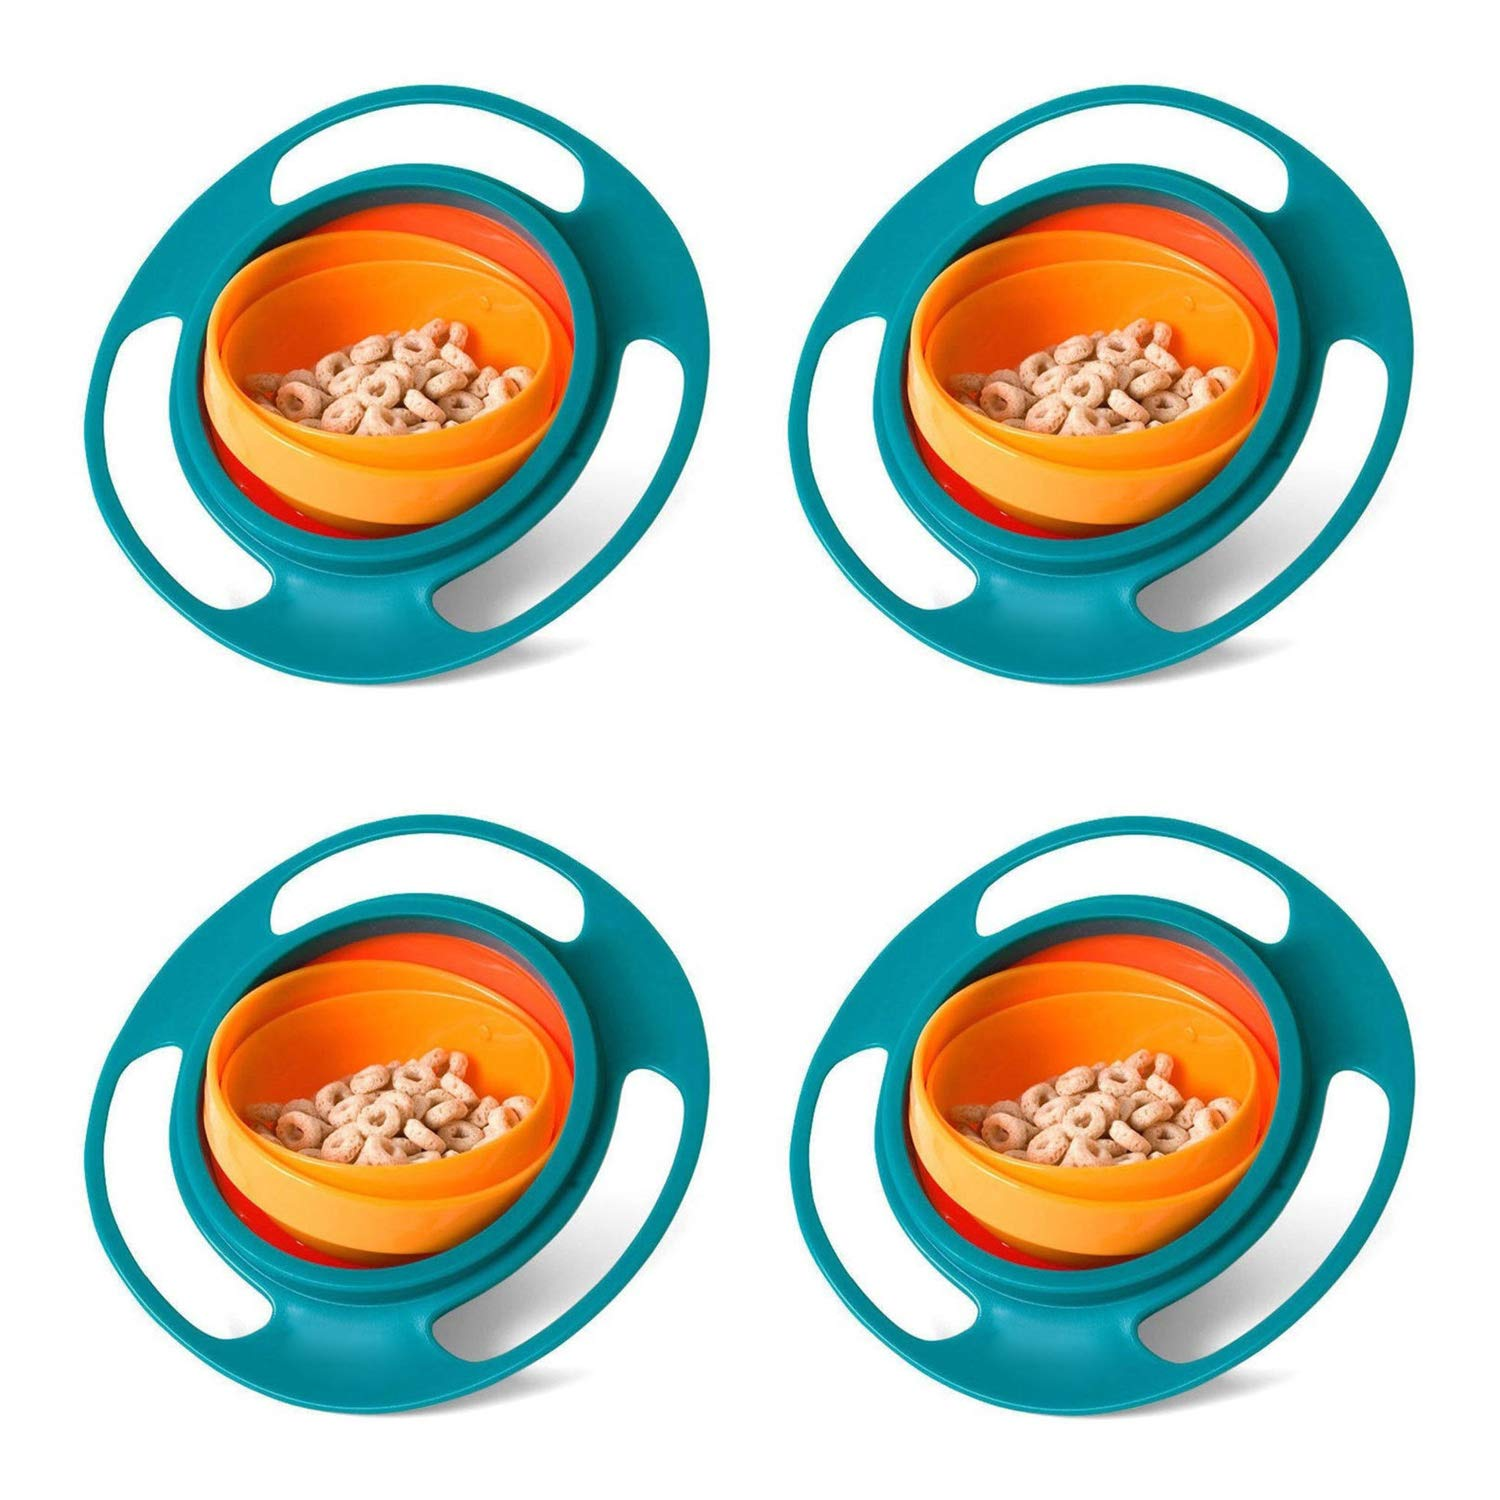 Universal Set of 4 Non-Spill 360° Children's Gyro Bowl - Colourful Fun Feeding Bowl with Smooth 360° Gyroscopic Rotation - Suitable for Babies, Toddlers and Infants.